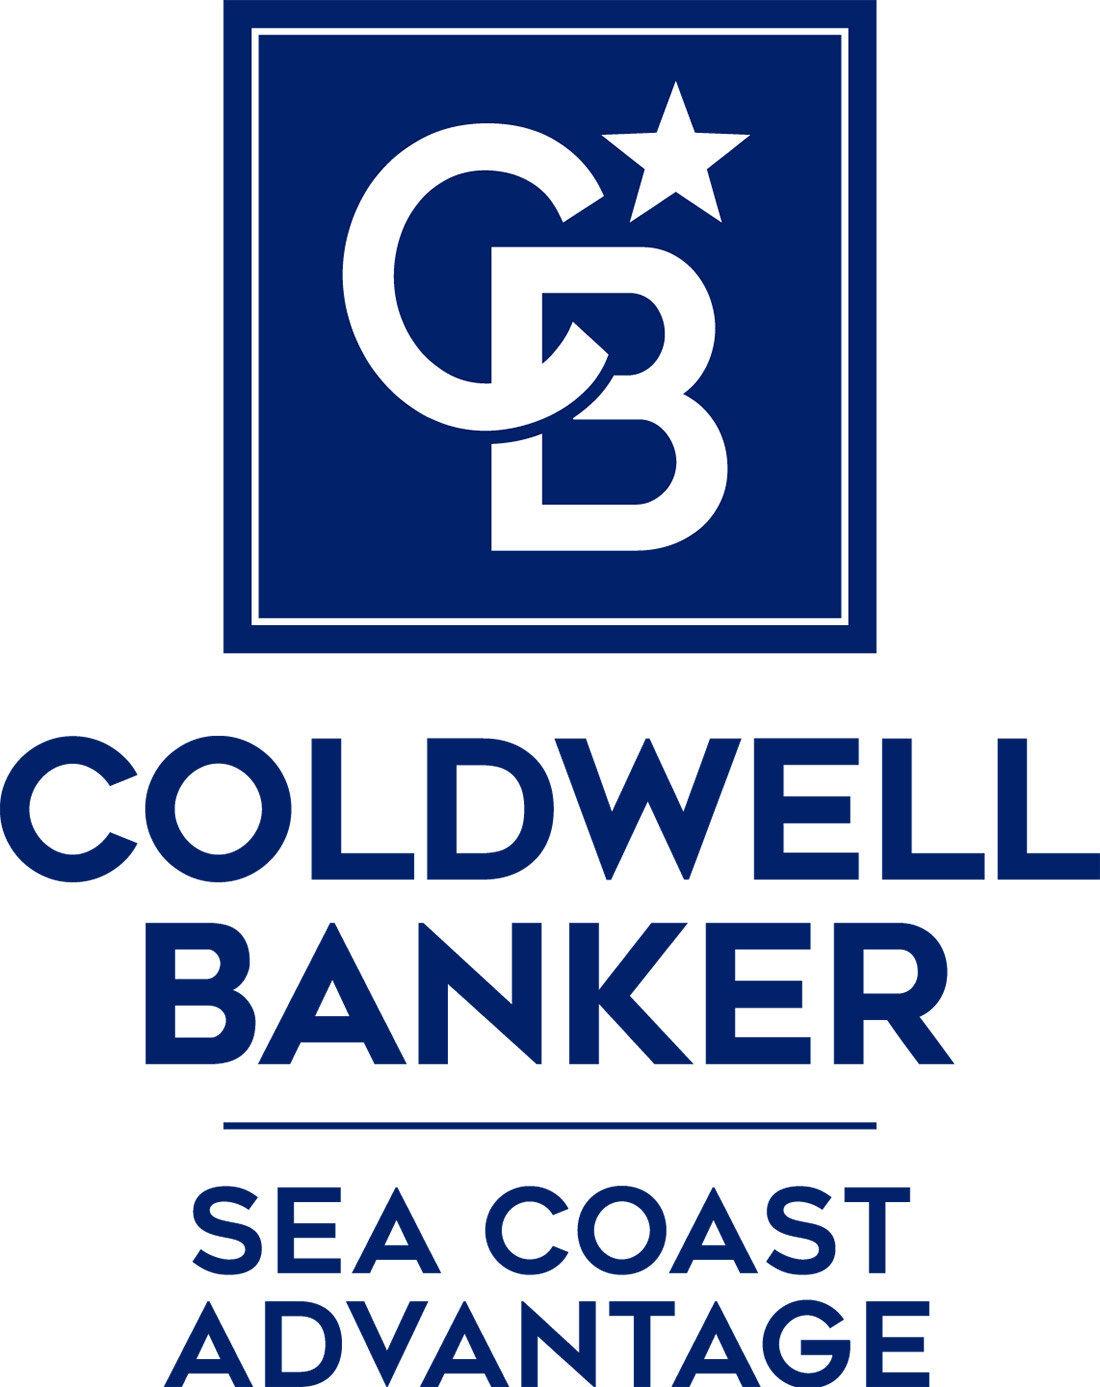 Albert Kozel - Coldwell Banker Sea Coast Advantage Realty